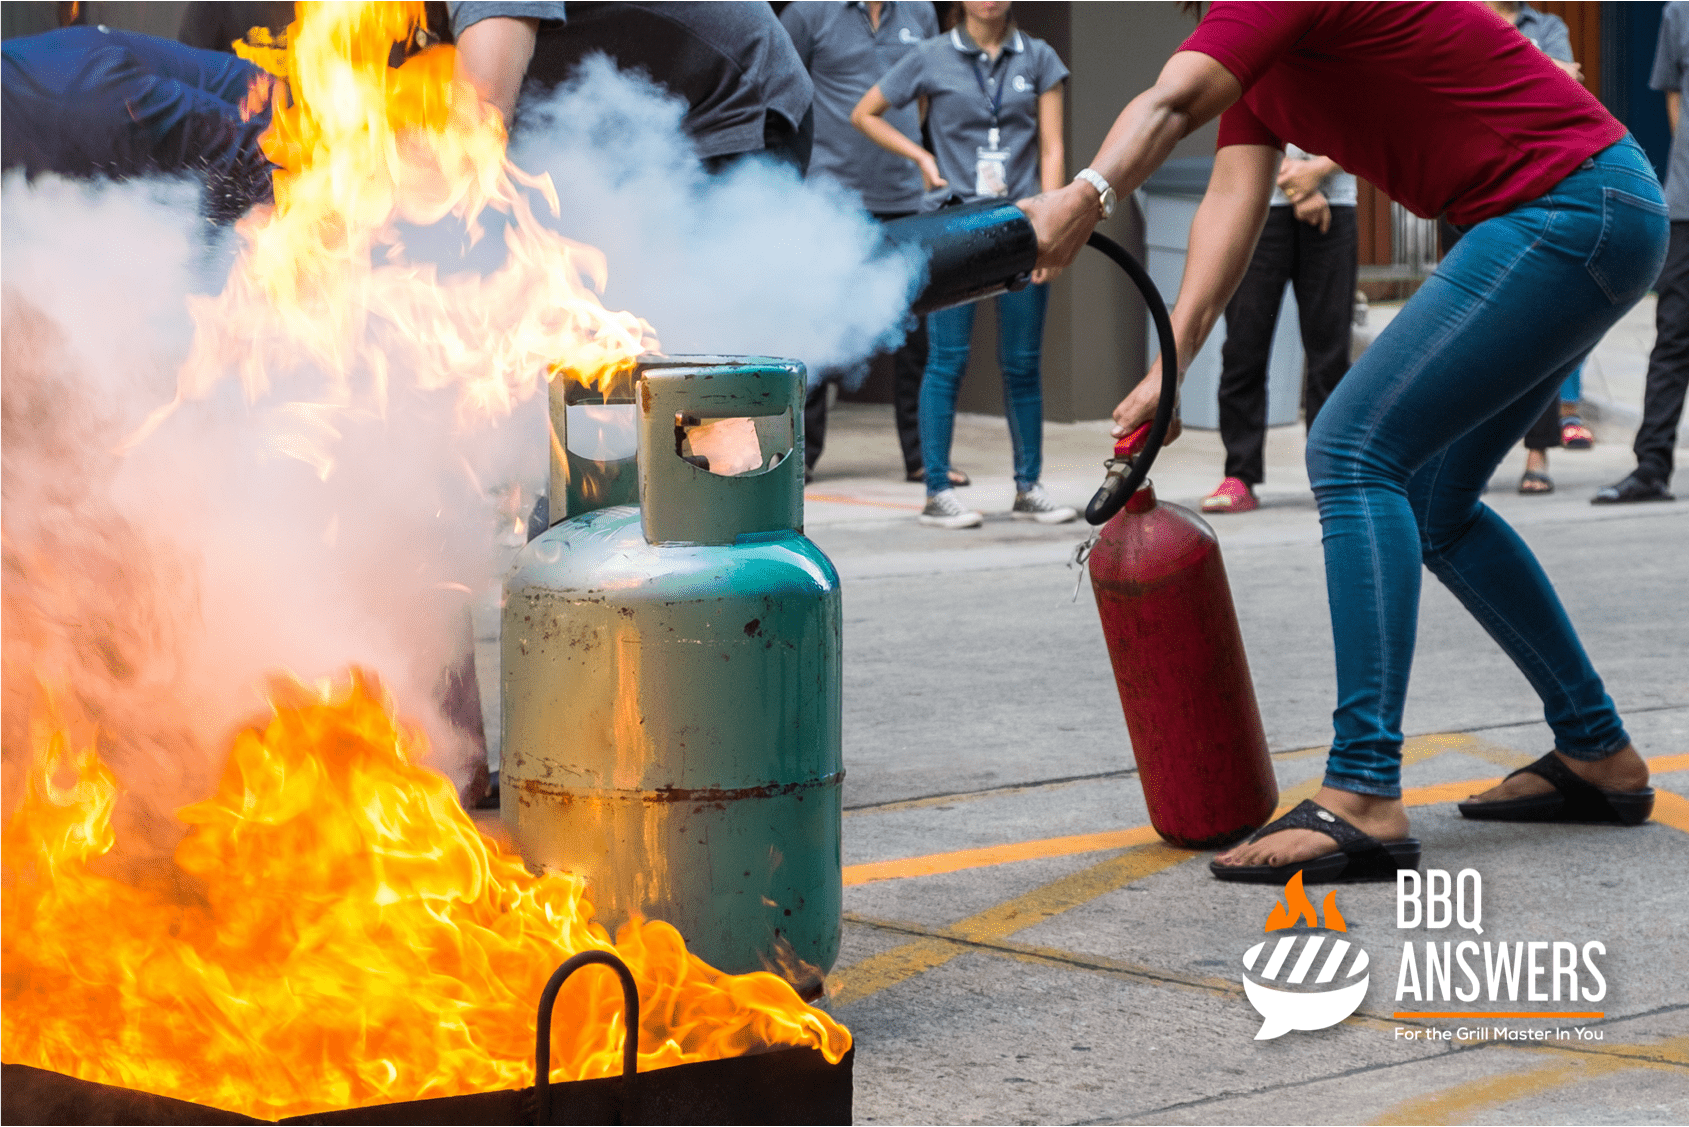 BBQ Gas Bottle Safety | BBQanswers